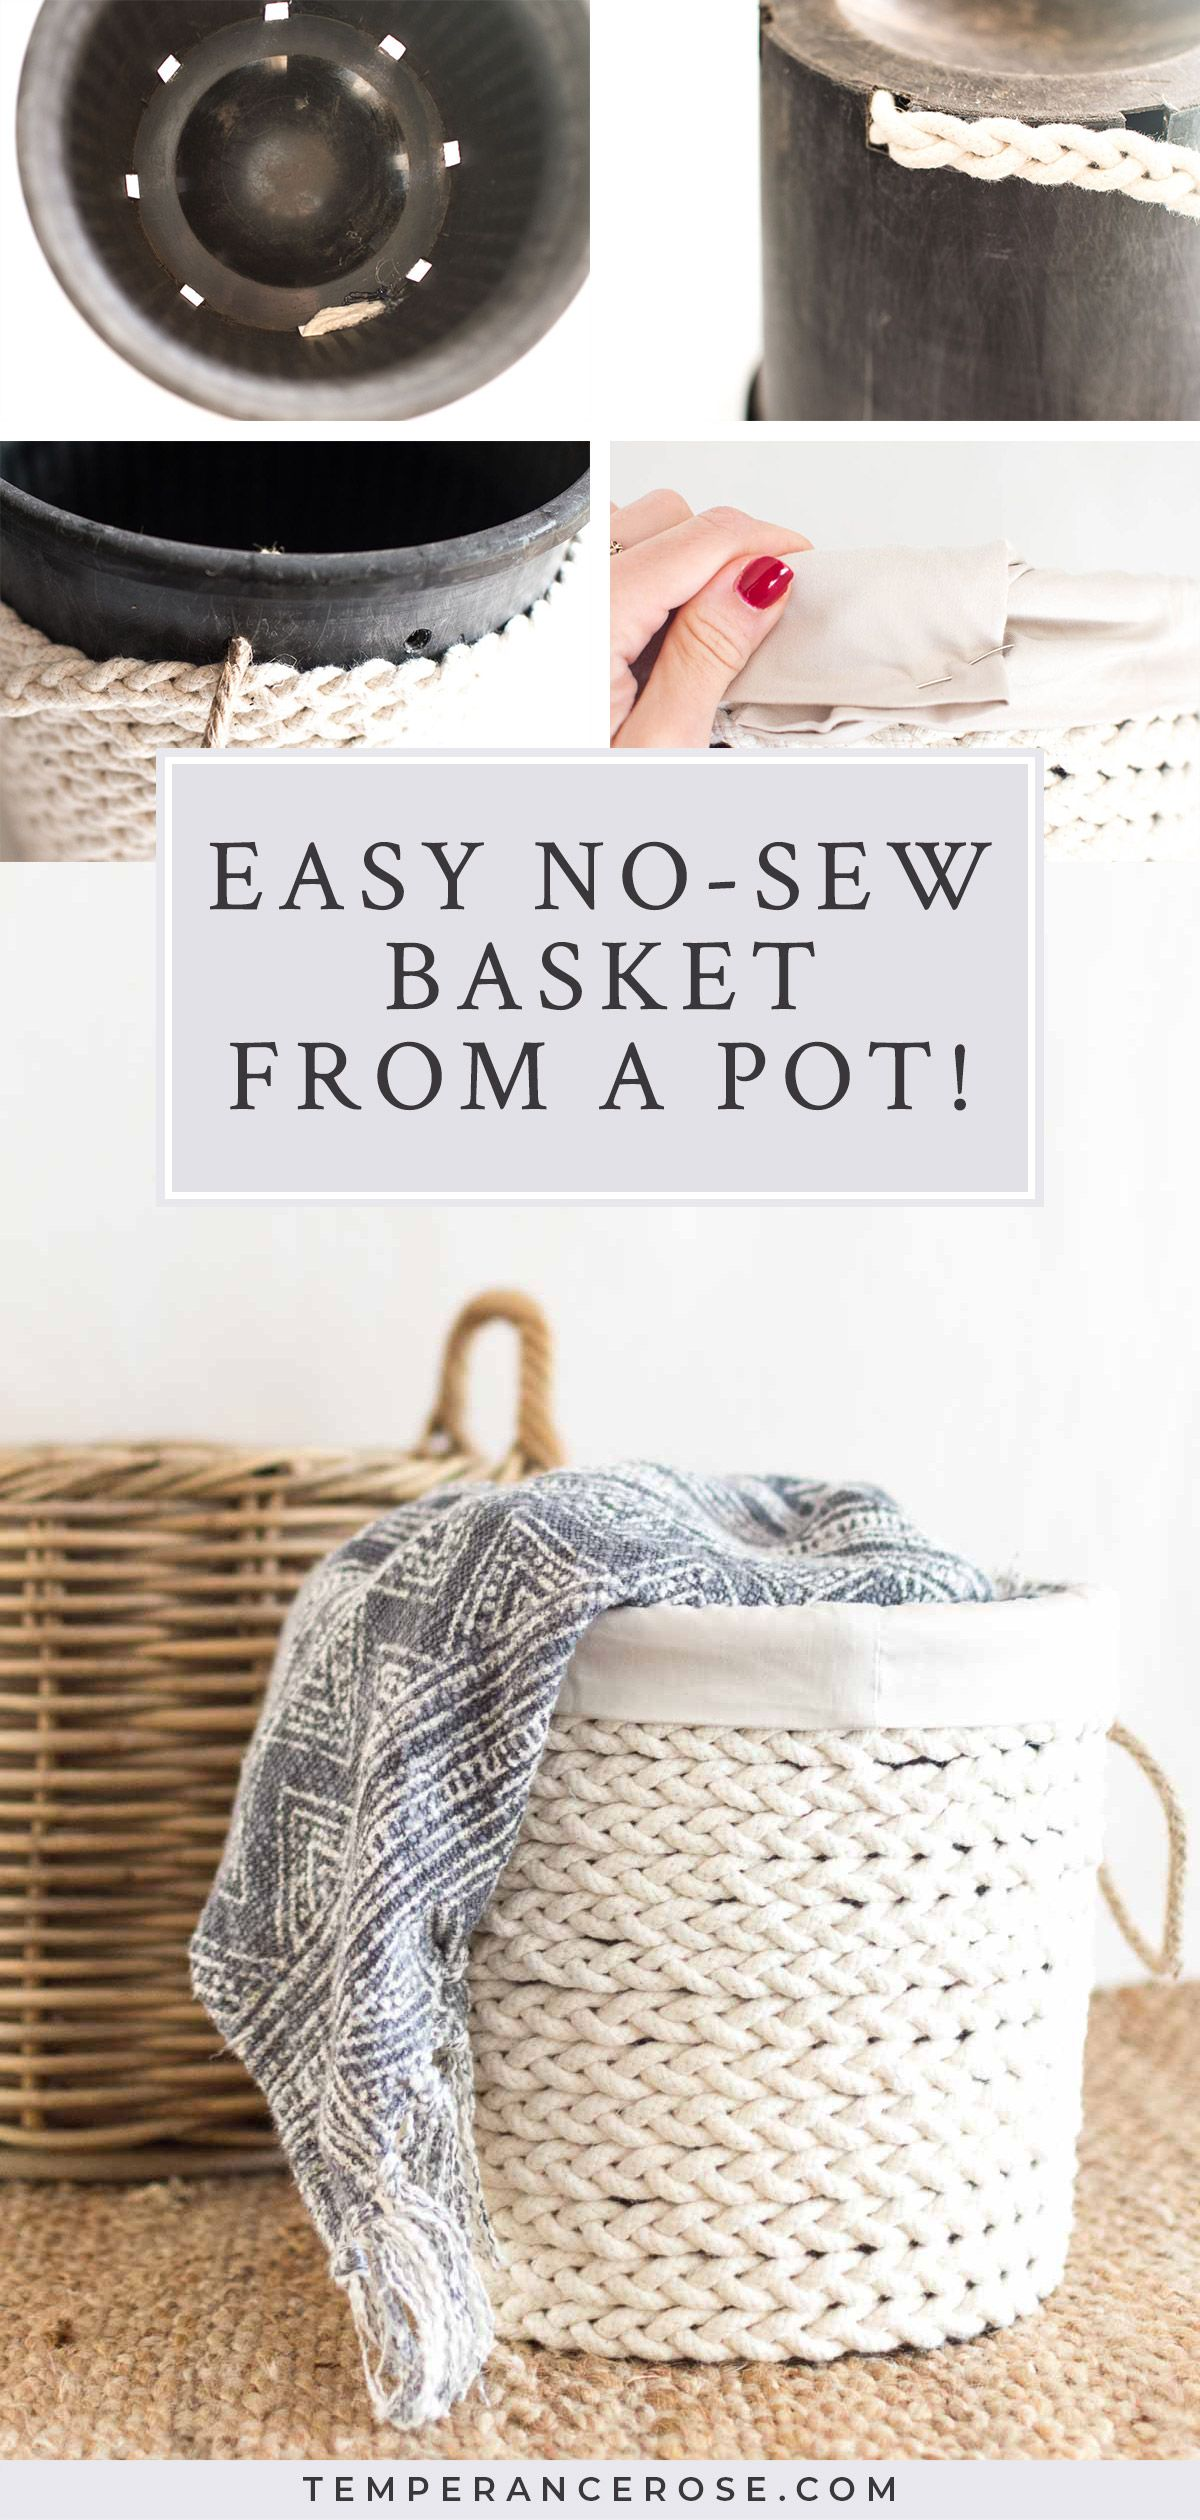 Simple no-sew braided basket from an old pot